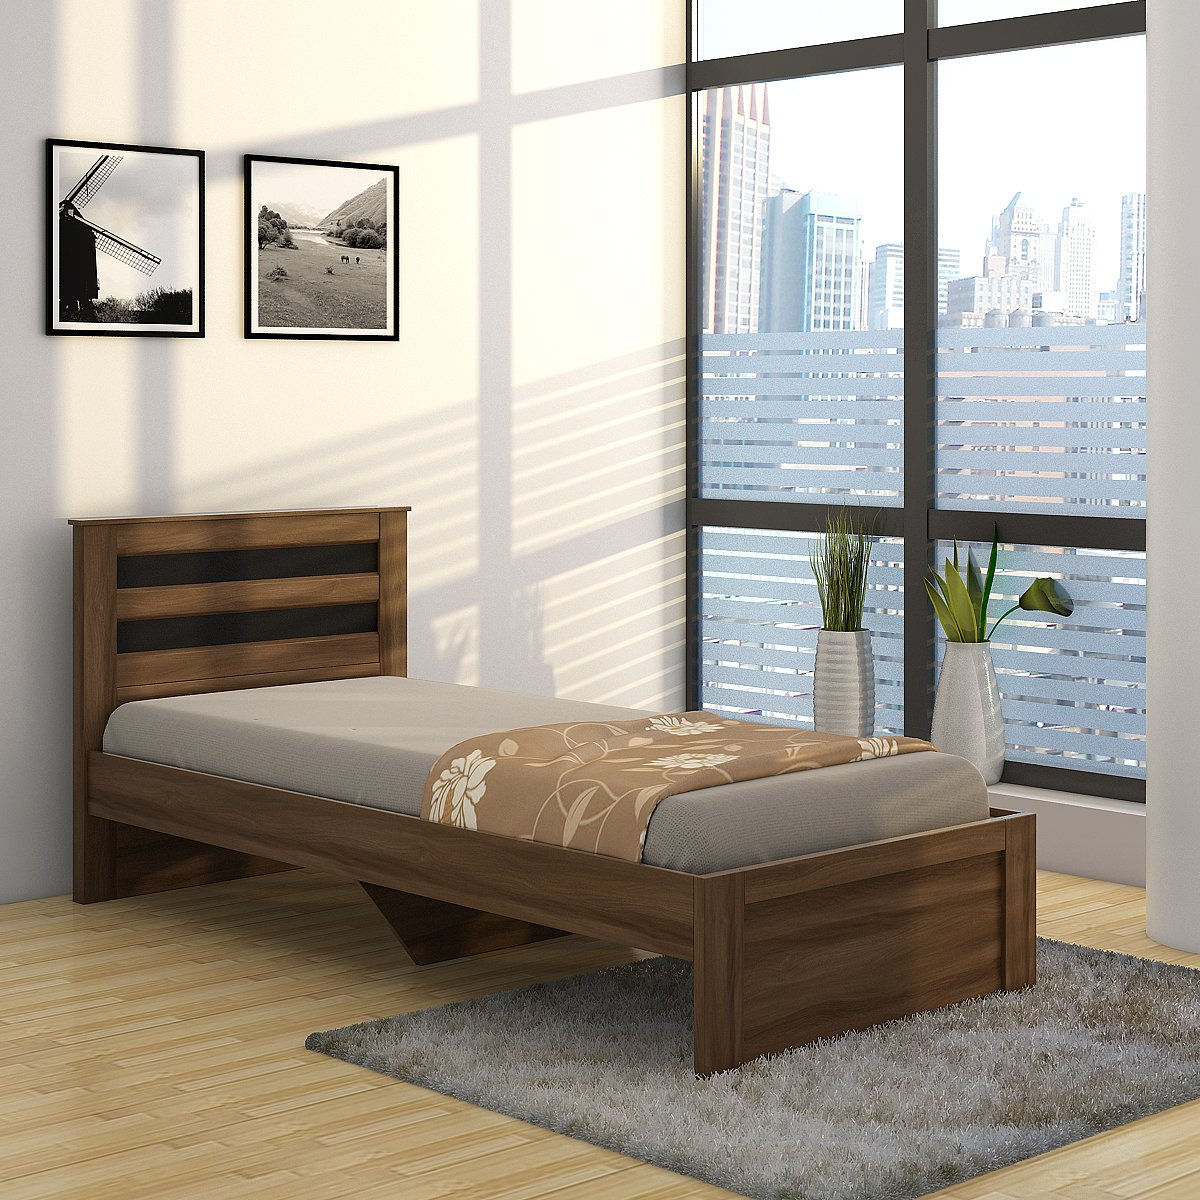 Spacewood Astersb Single Size Bed